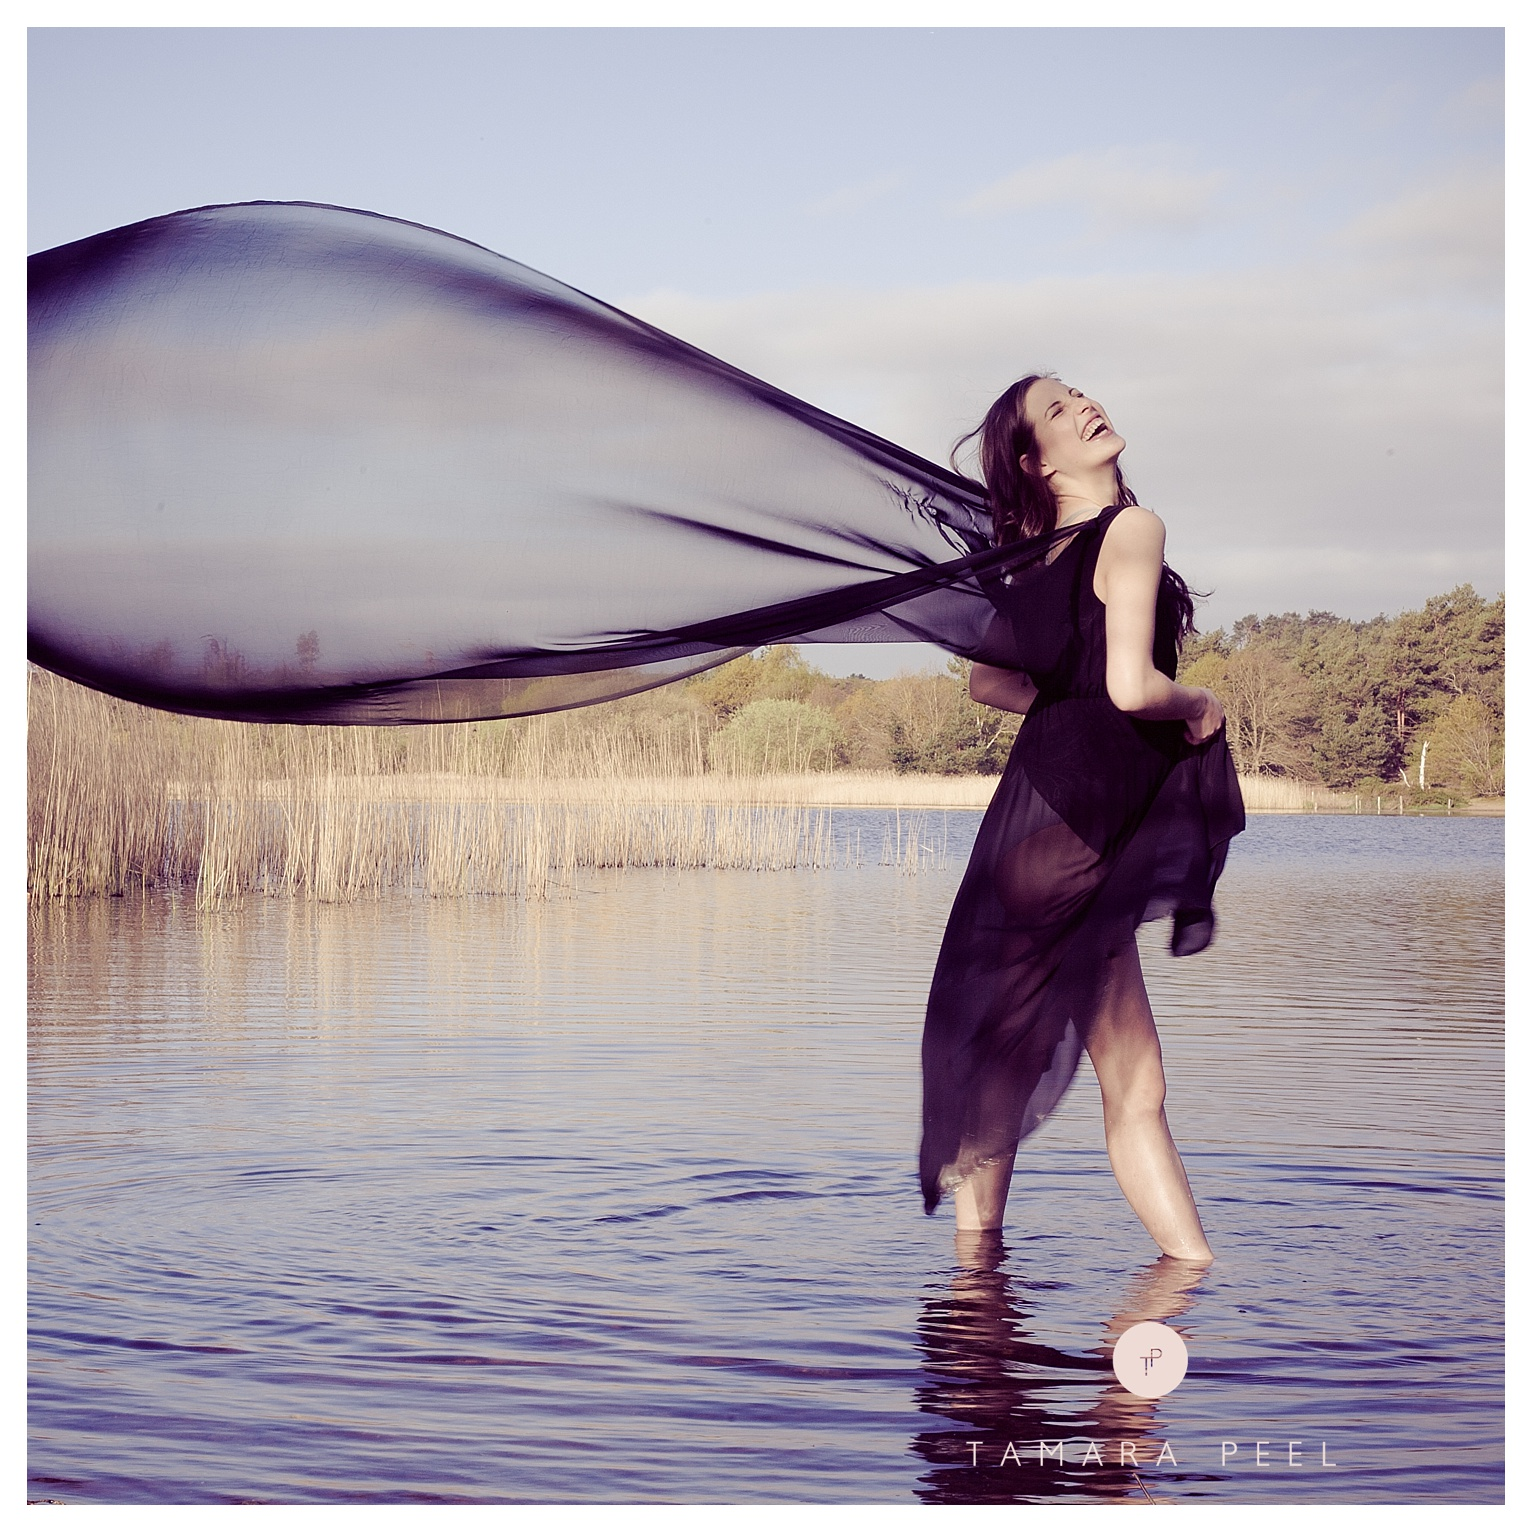 Tamara Peel. fine art. waterfairy. girl. wings. lake. beautiful_0041